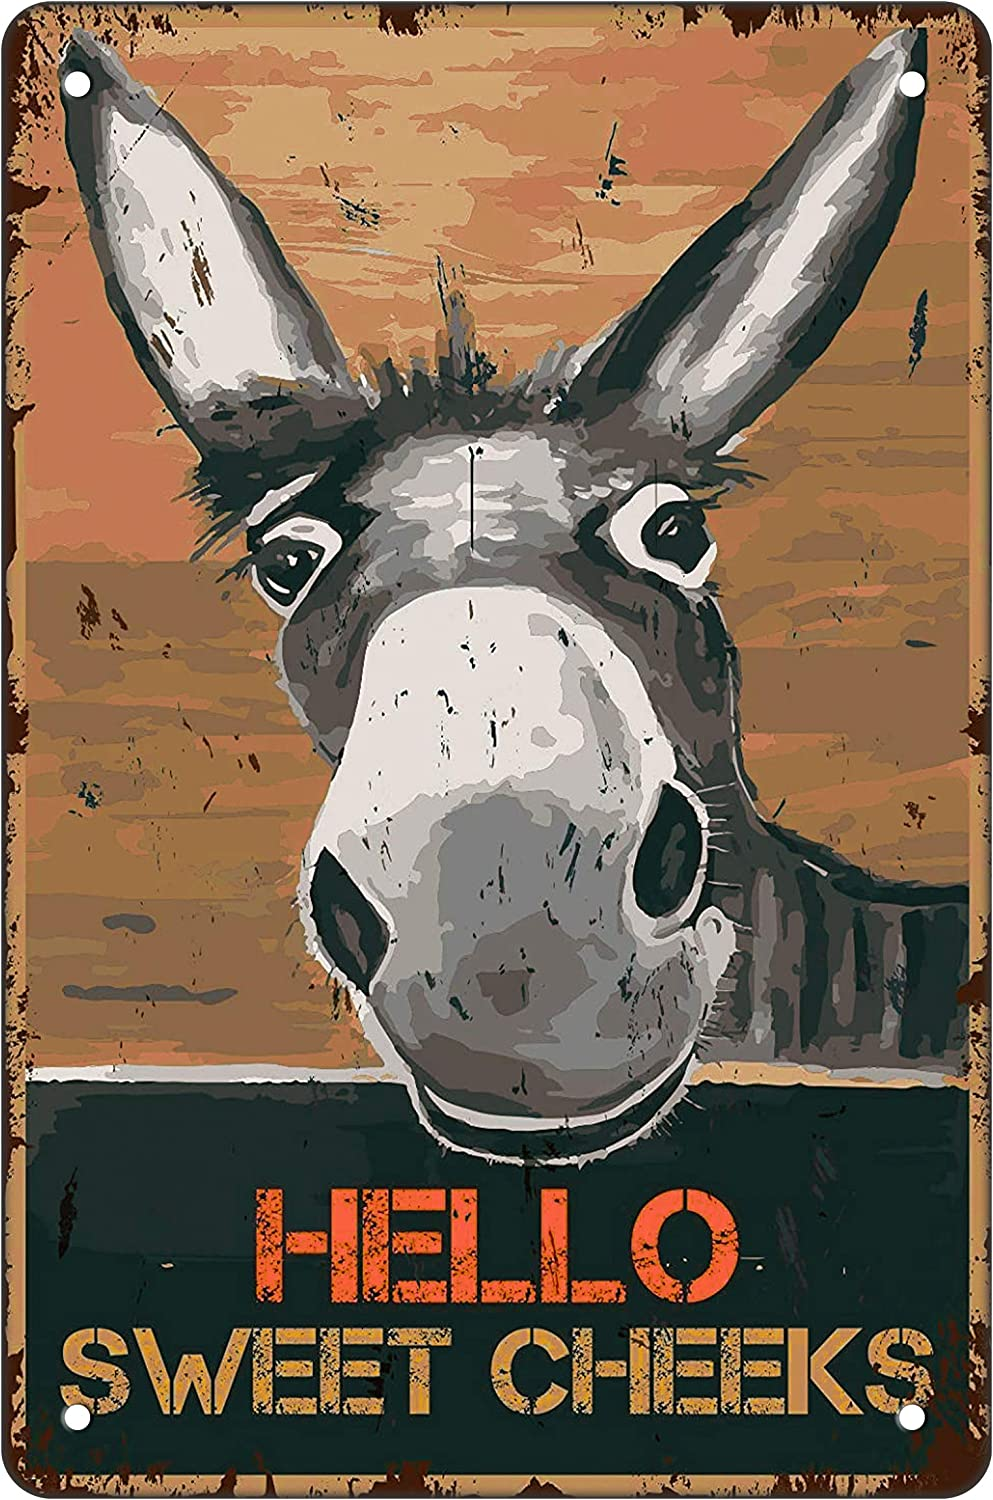 Funny Bathroom Metal Tin Sign Wall Decor - Hello Sweet Cheeks - Vintage Retro Donkey Tin Sign for Farmhouse/Office/Home/Classroom Bathroom Decor Gifts Best Decor Gift Ideas for Friends 8x12 Inch